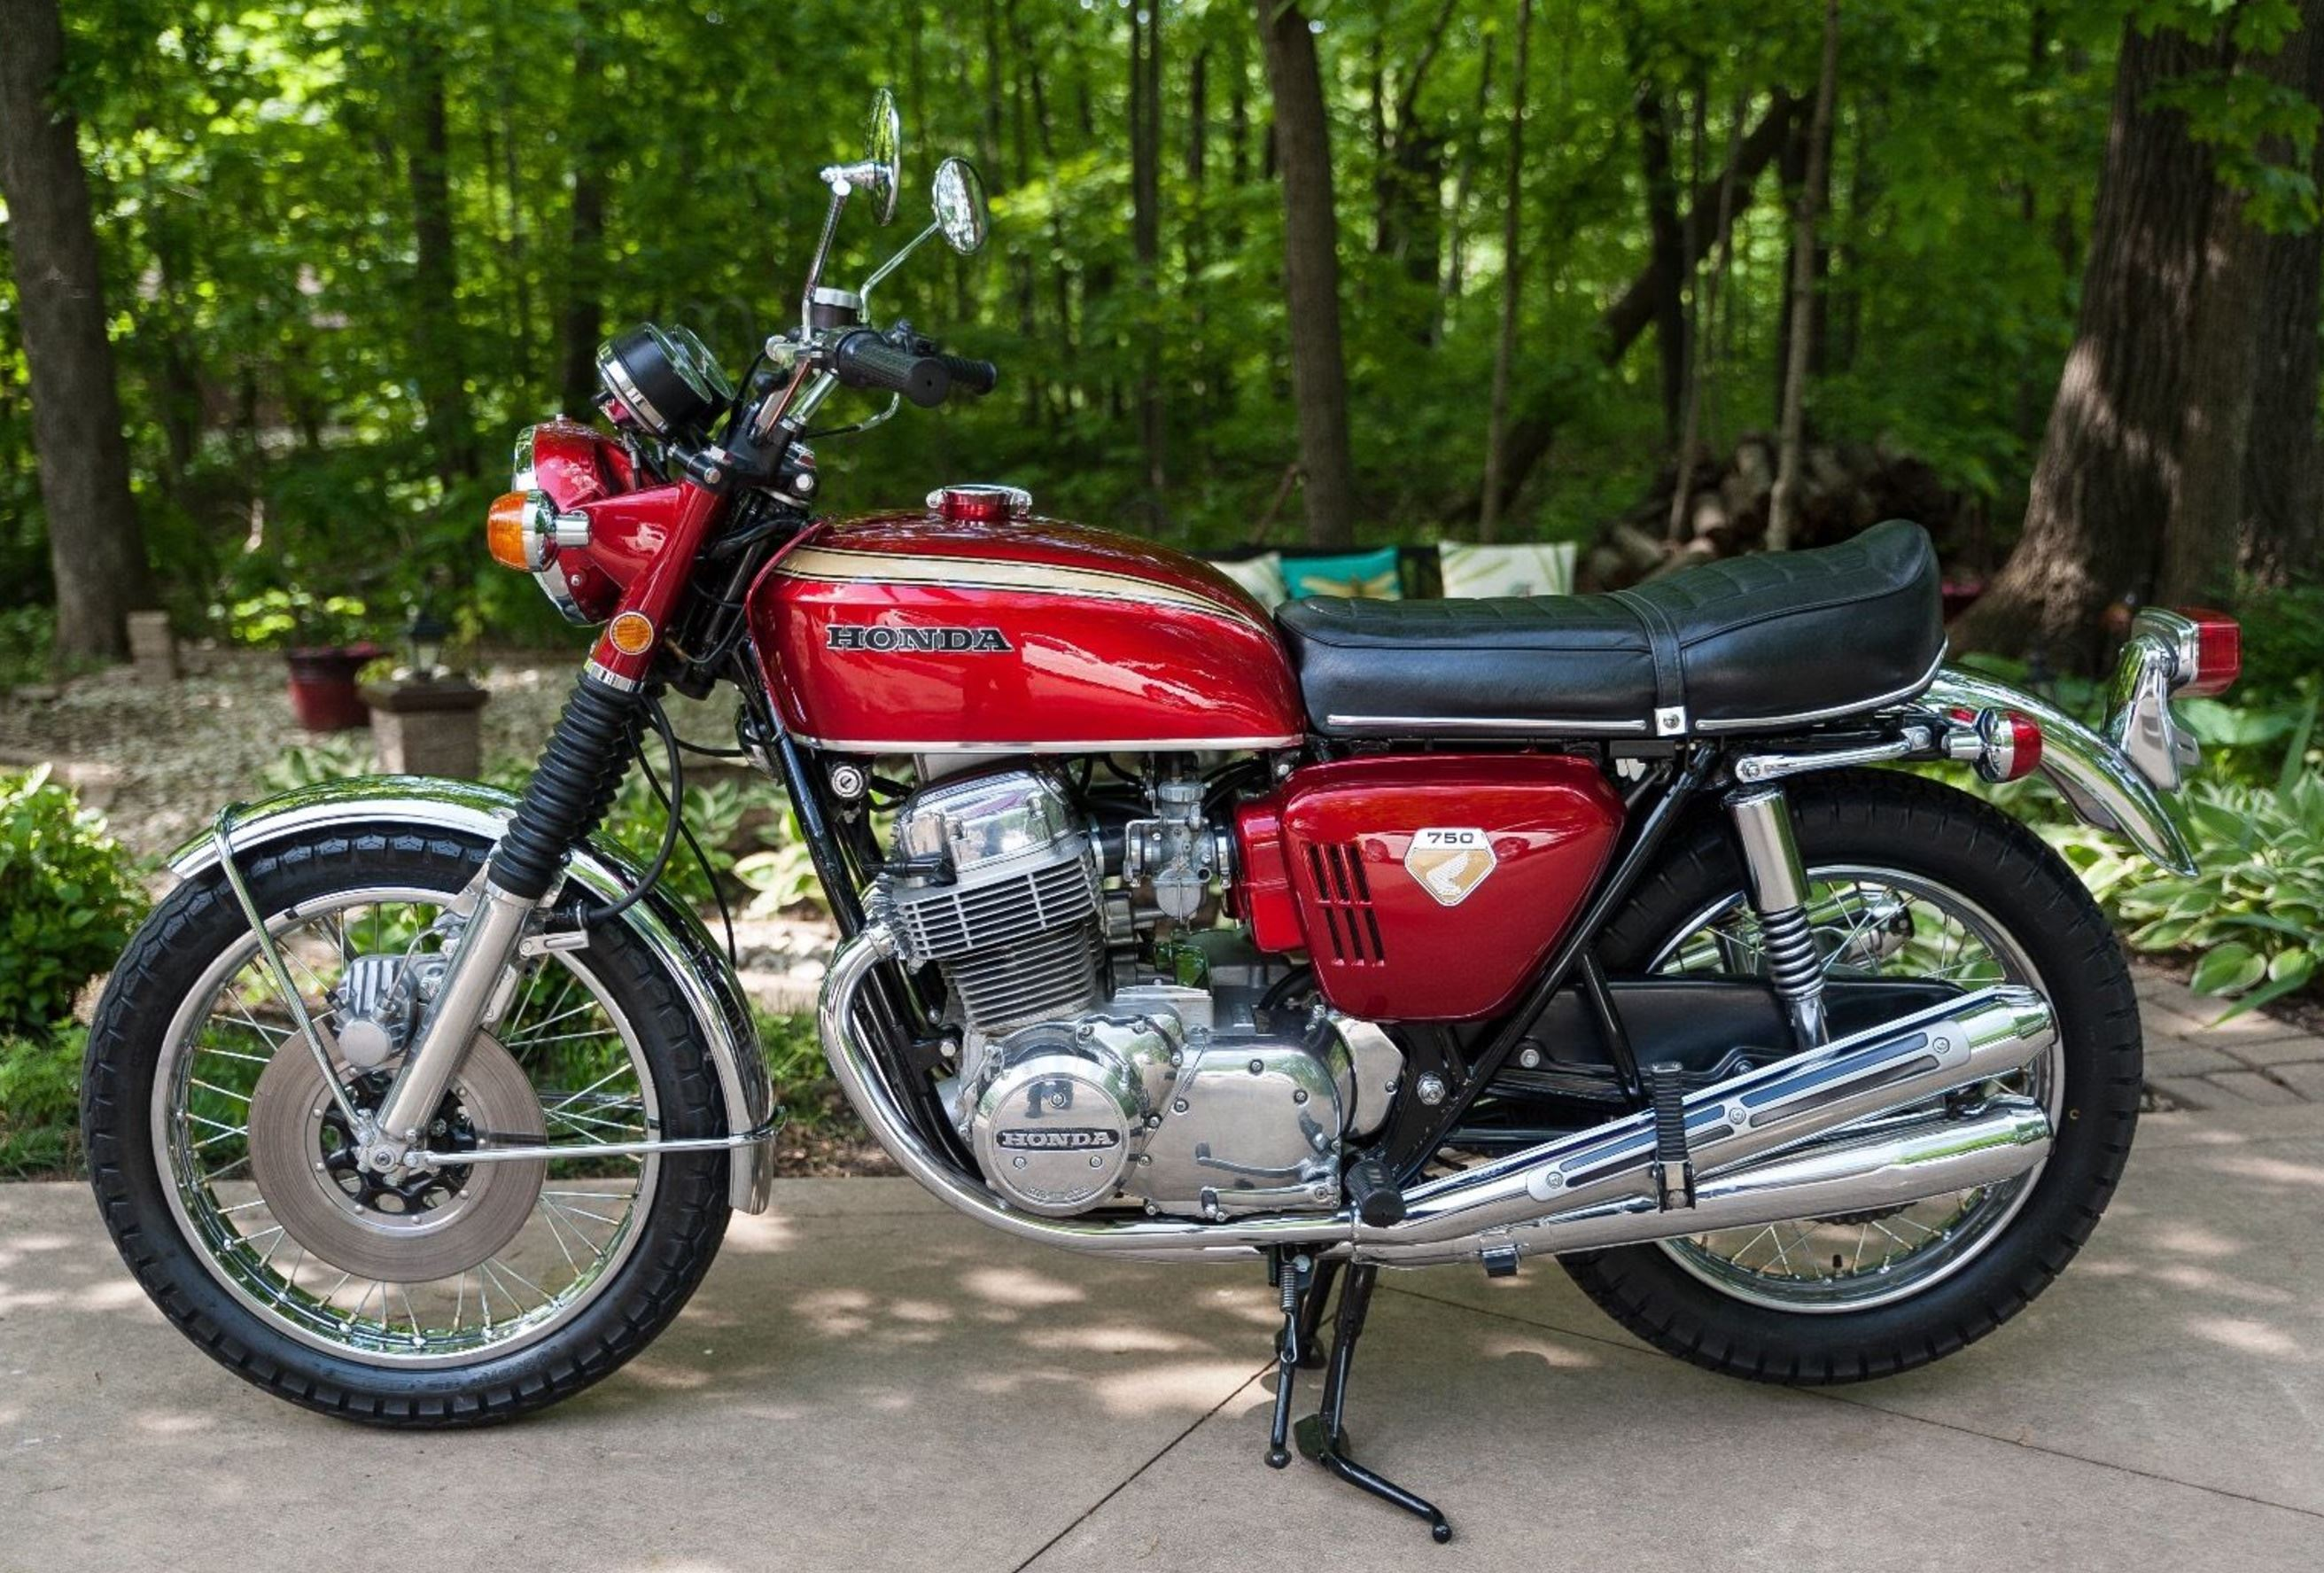 Sandcast K0 1969 Honda Cb750 Bike Urious 1970 Motorcycle Vin Decoder The Number Cb7501004729 Shows That This Was About Halfway Through Run It Has 9562 Miles On Odometer And Looks To Be In Decent